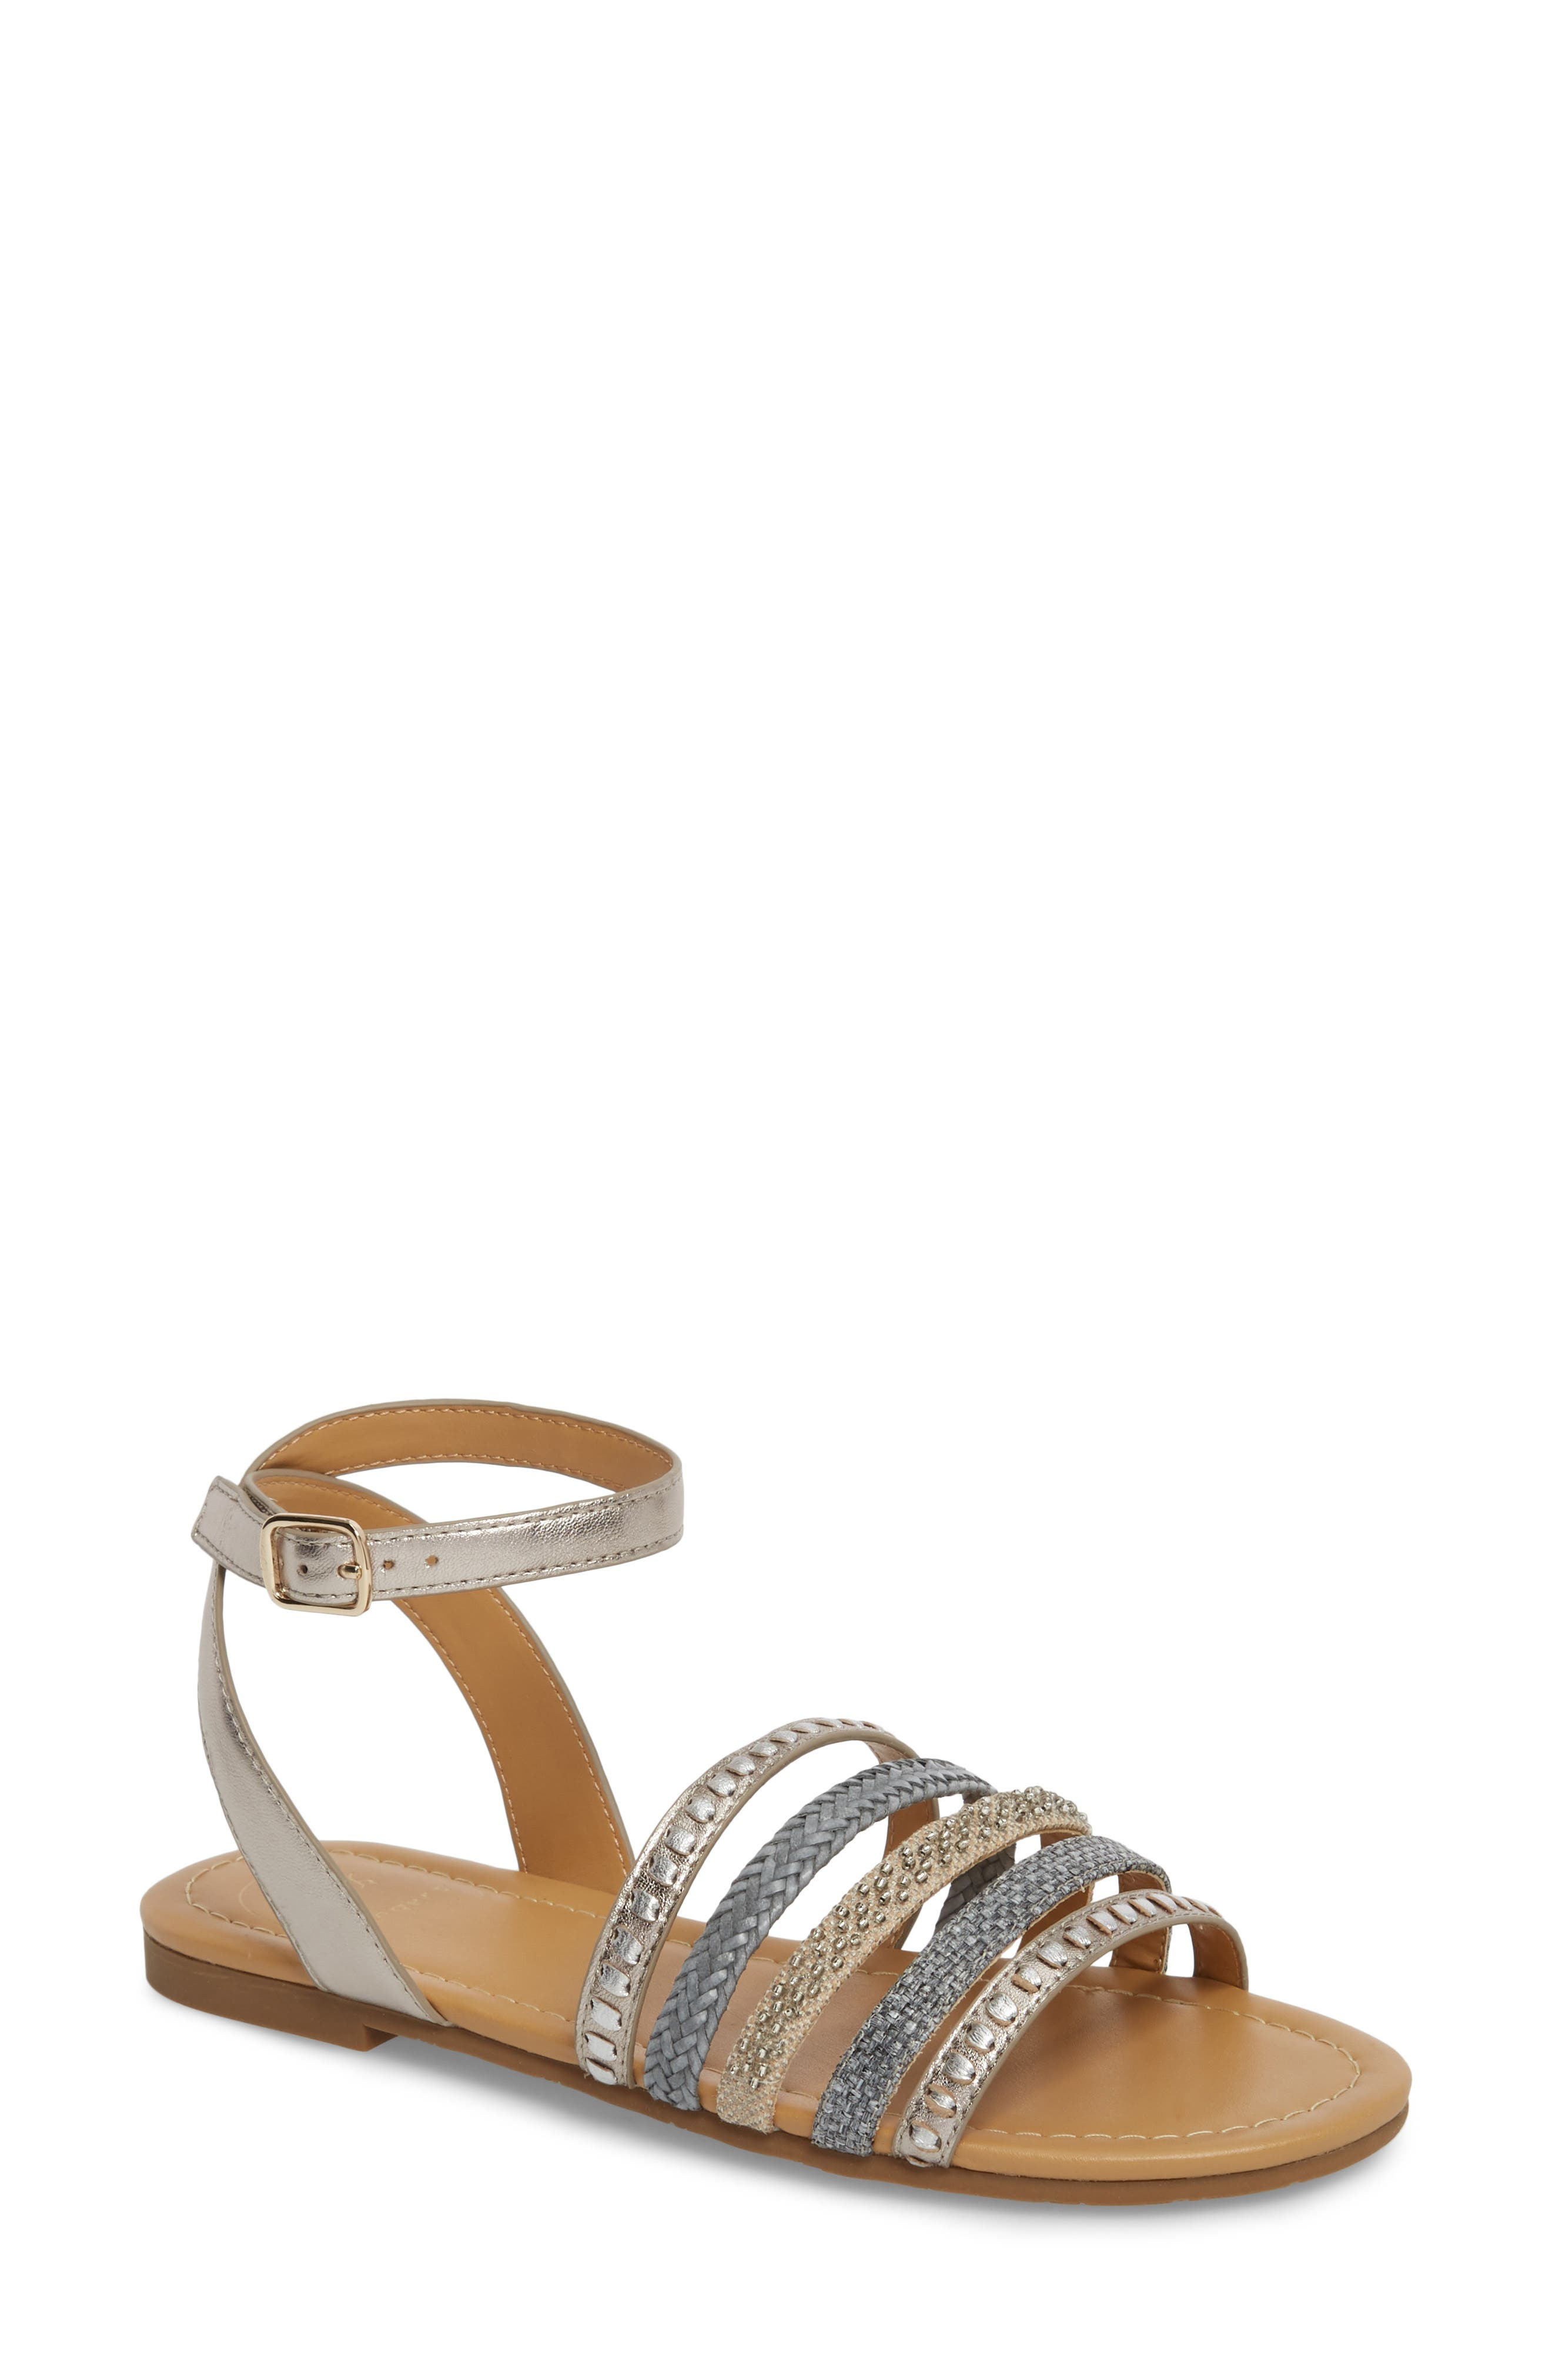 Hannah Braided Embellished Sandal,                         Main,                         color, 040